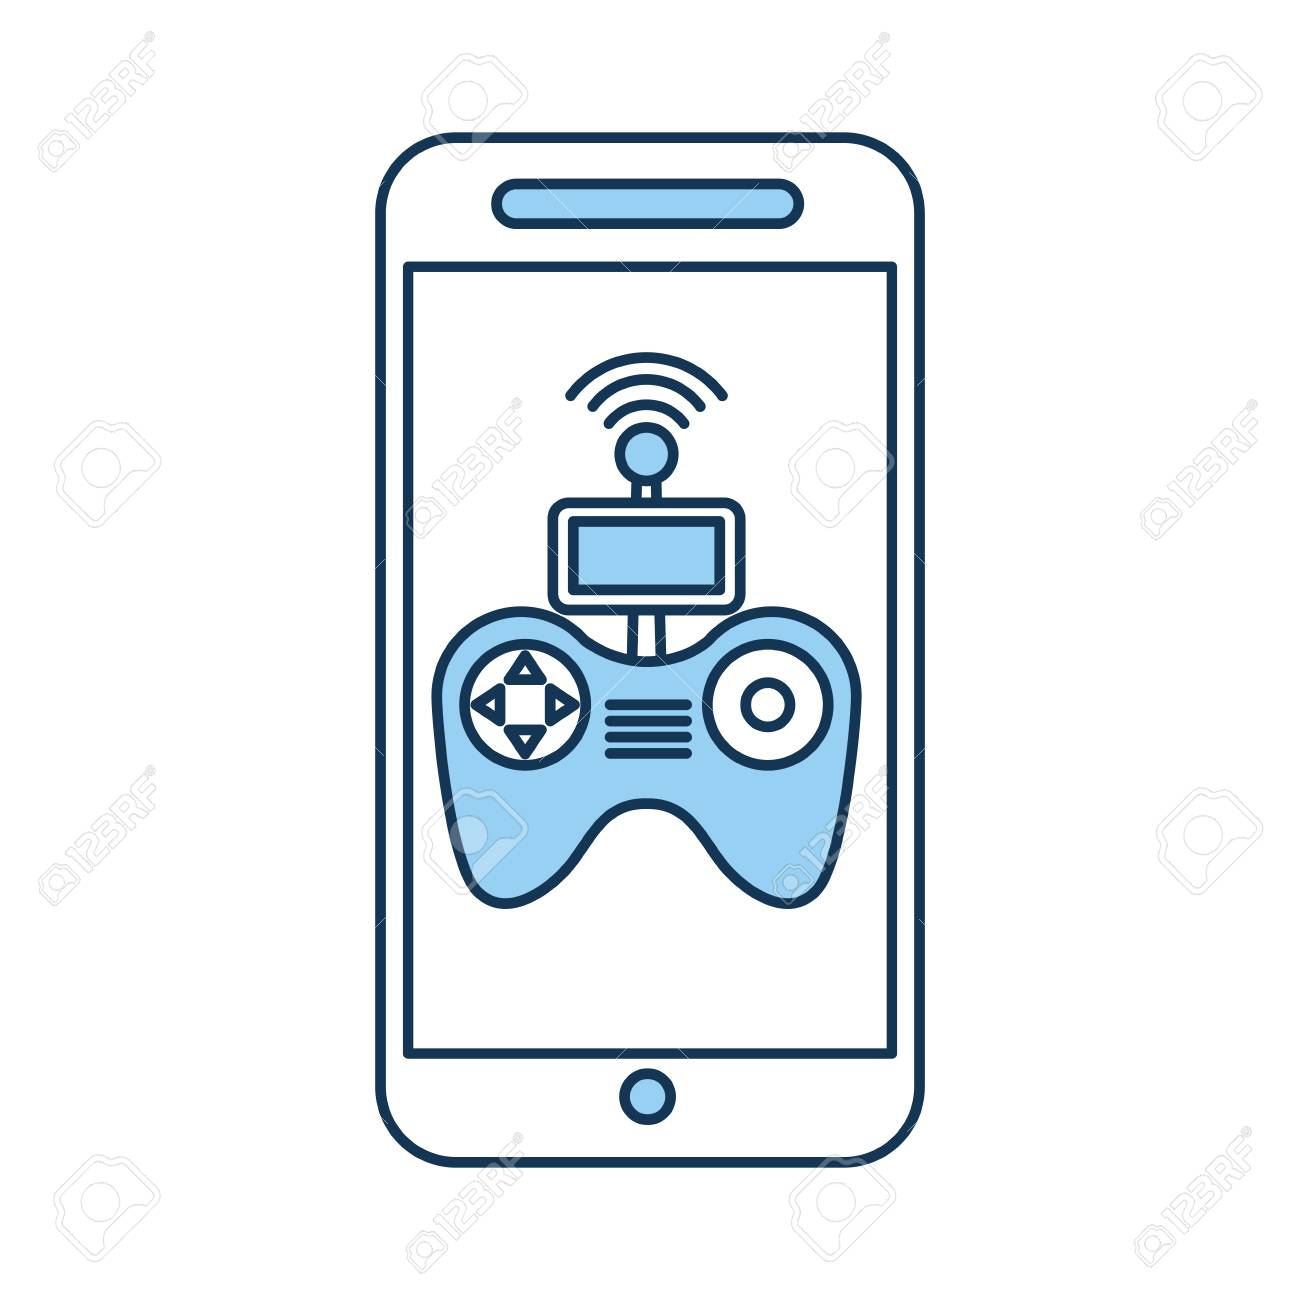 A smartphone with Drone remote control app vector illustration